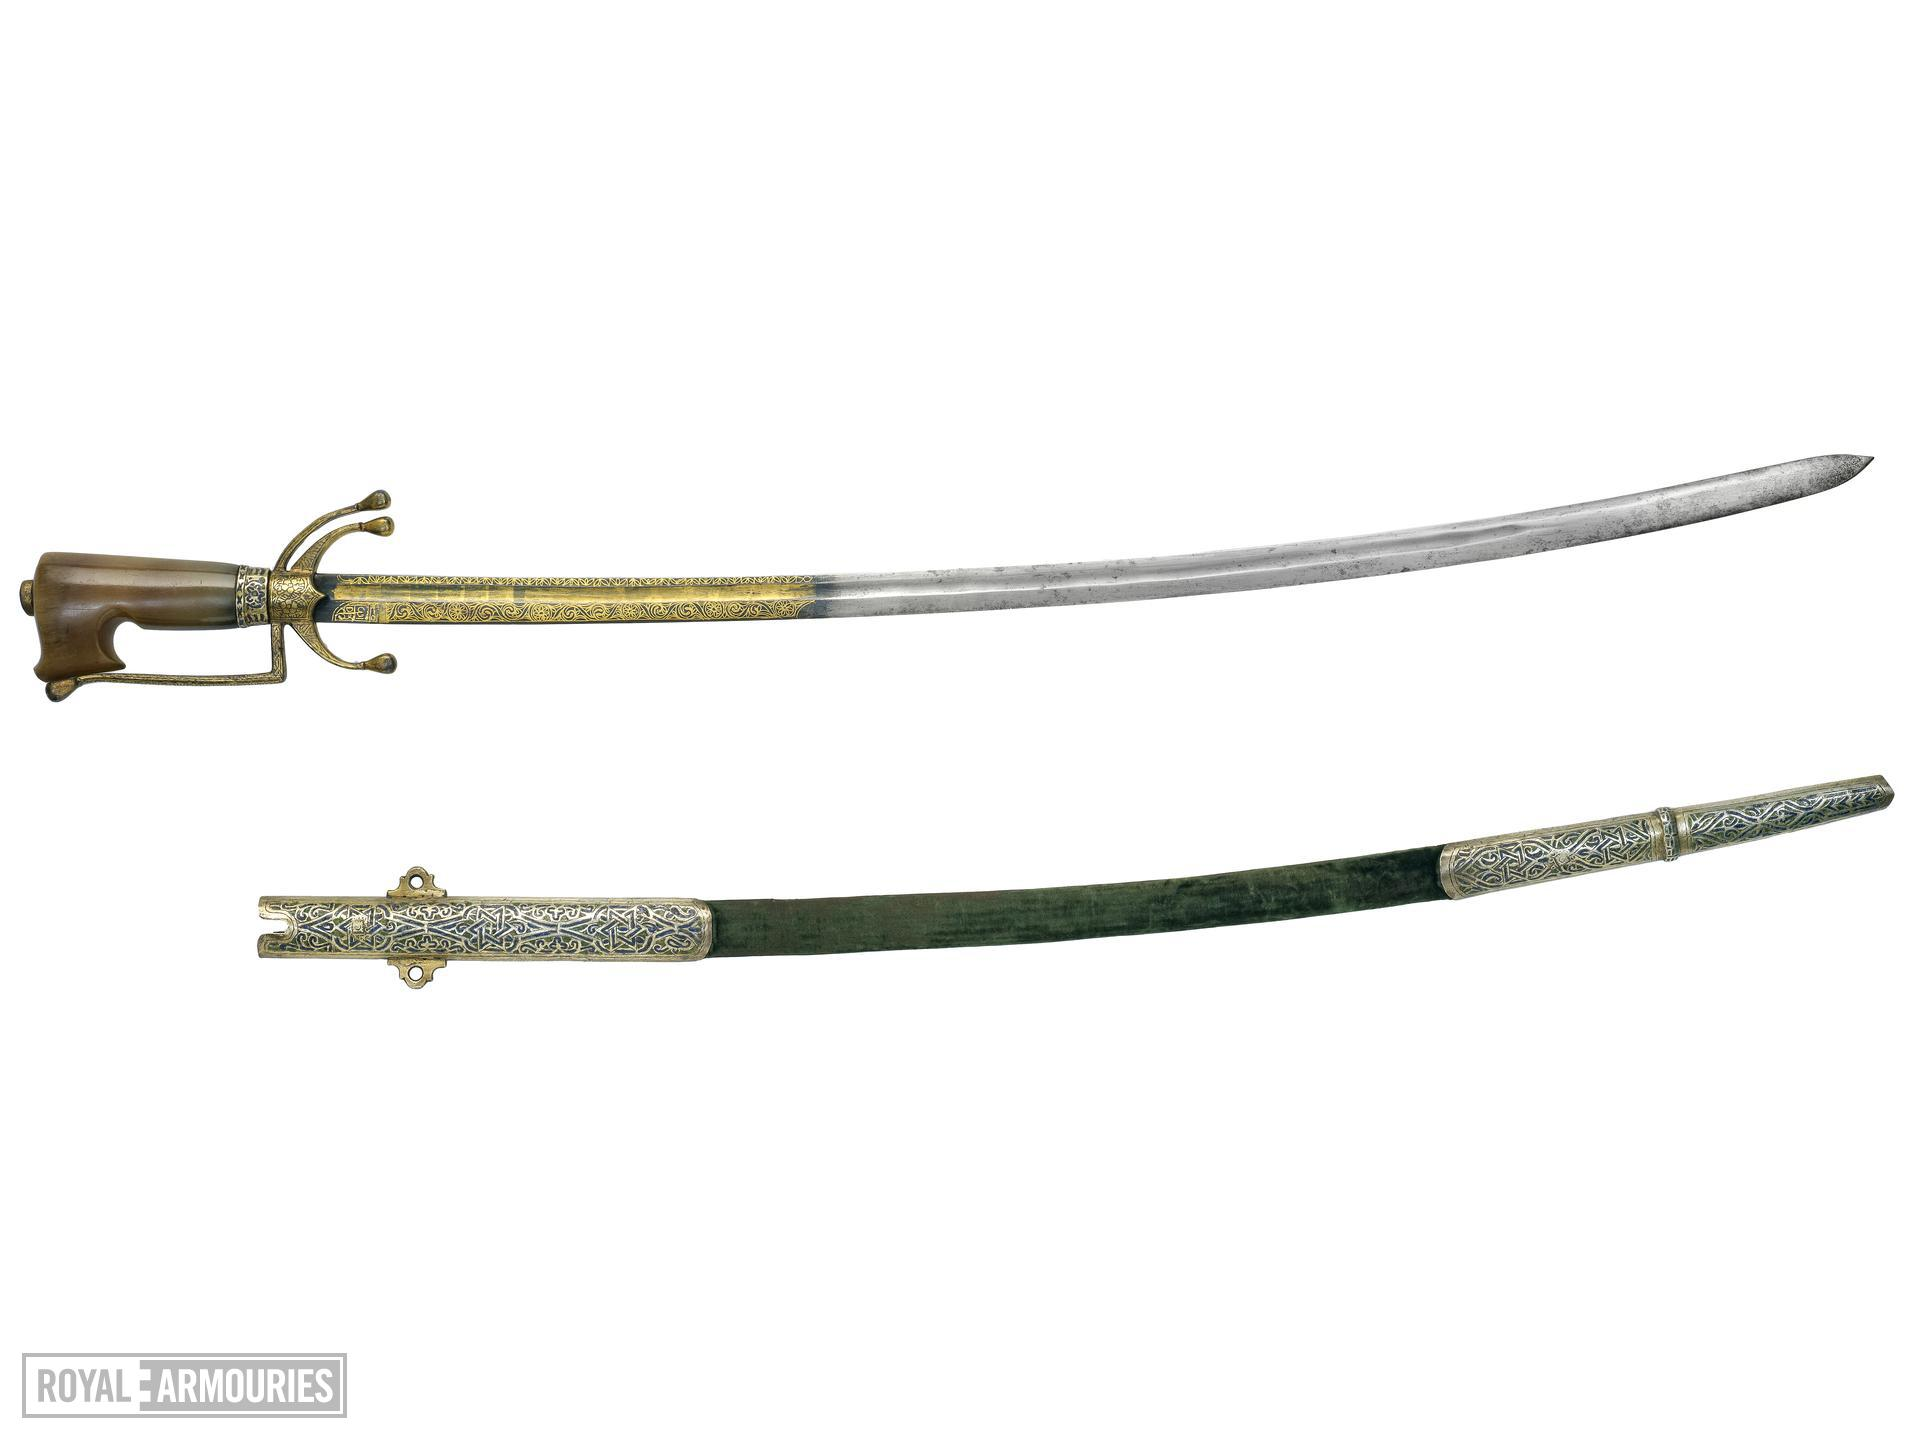 Sword (nimcha) and scabbard